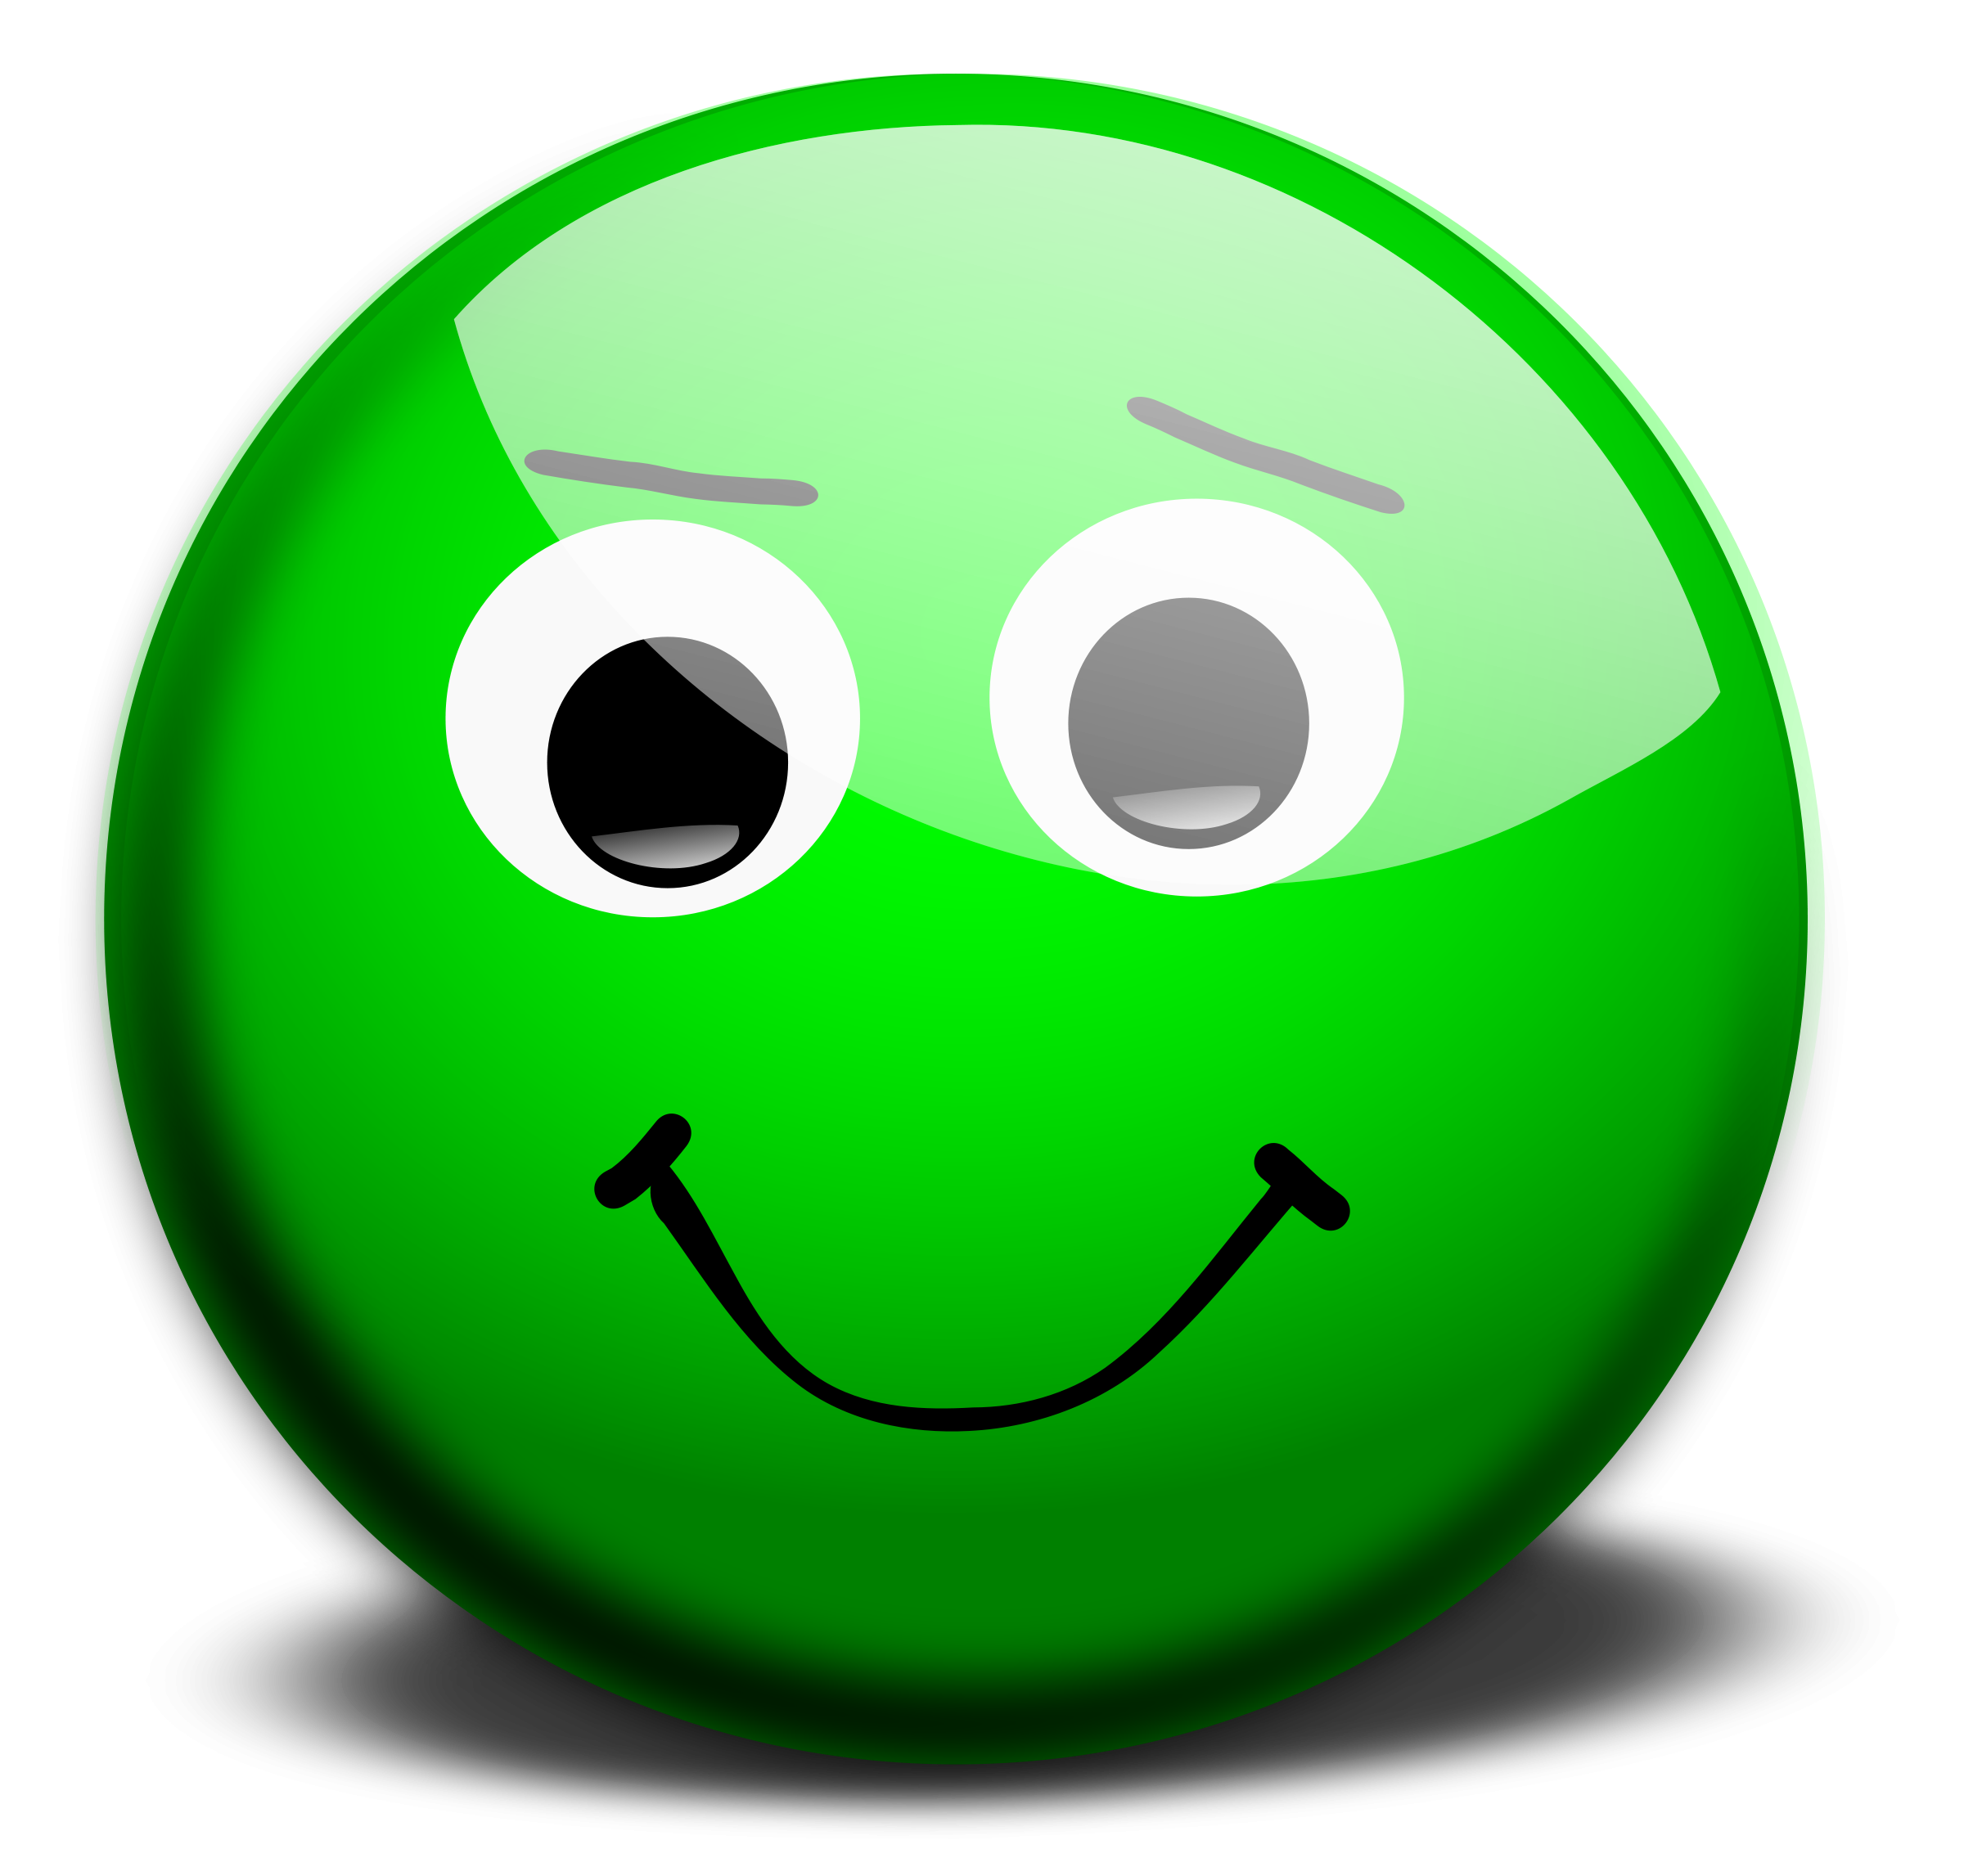 Green smiley face png. Clipart panda free images